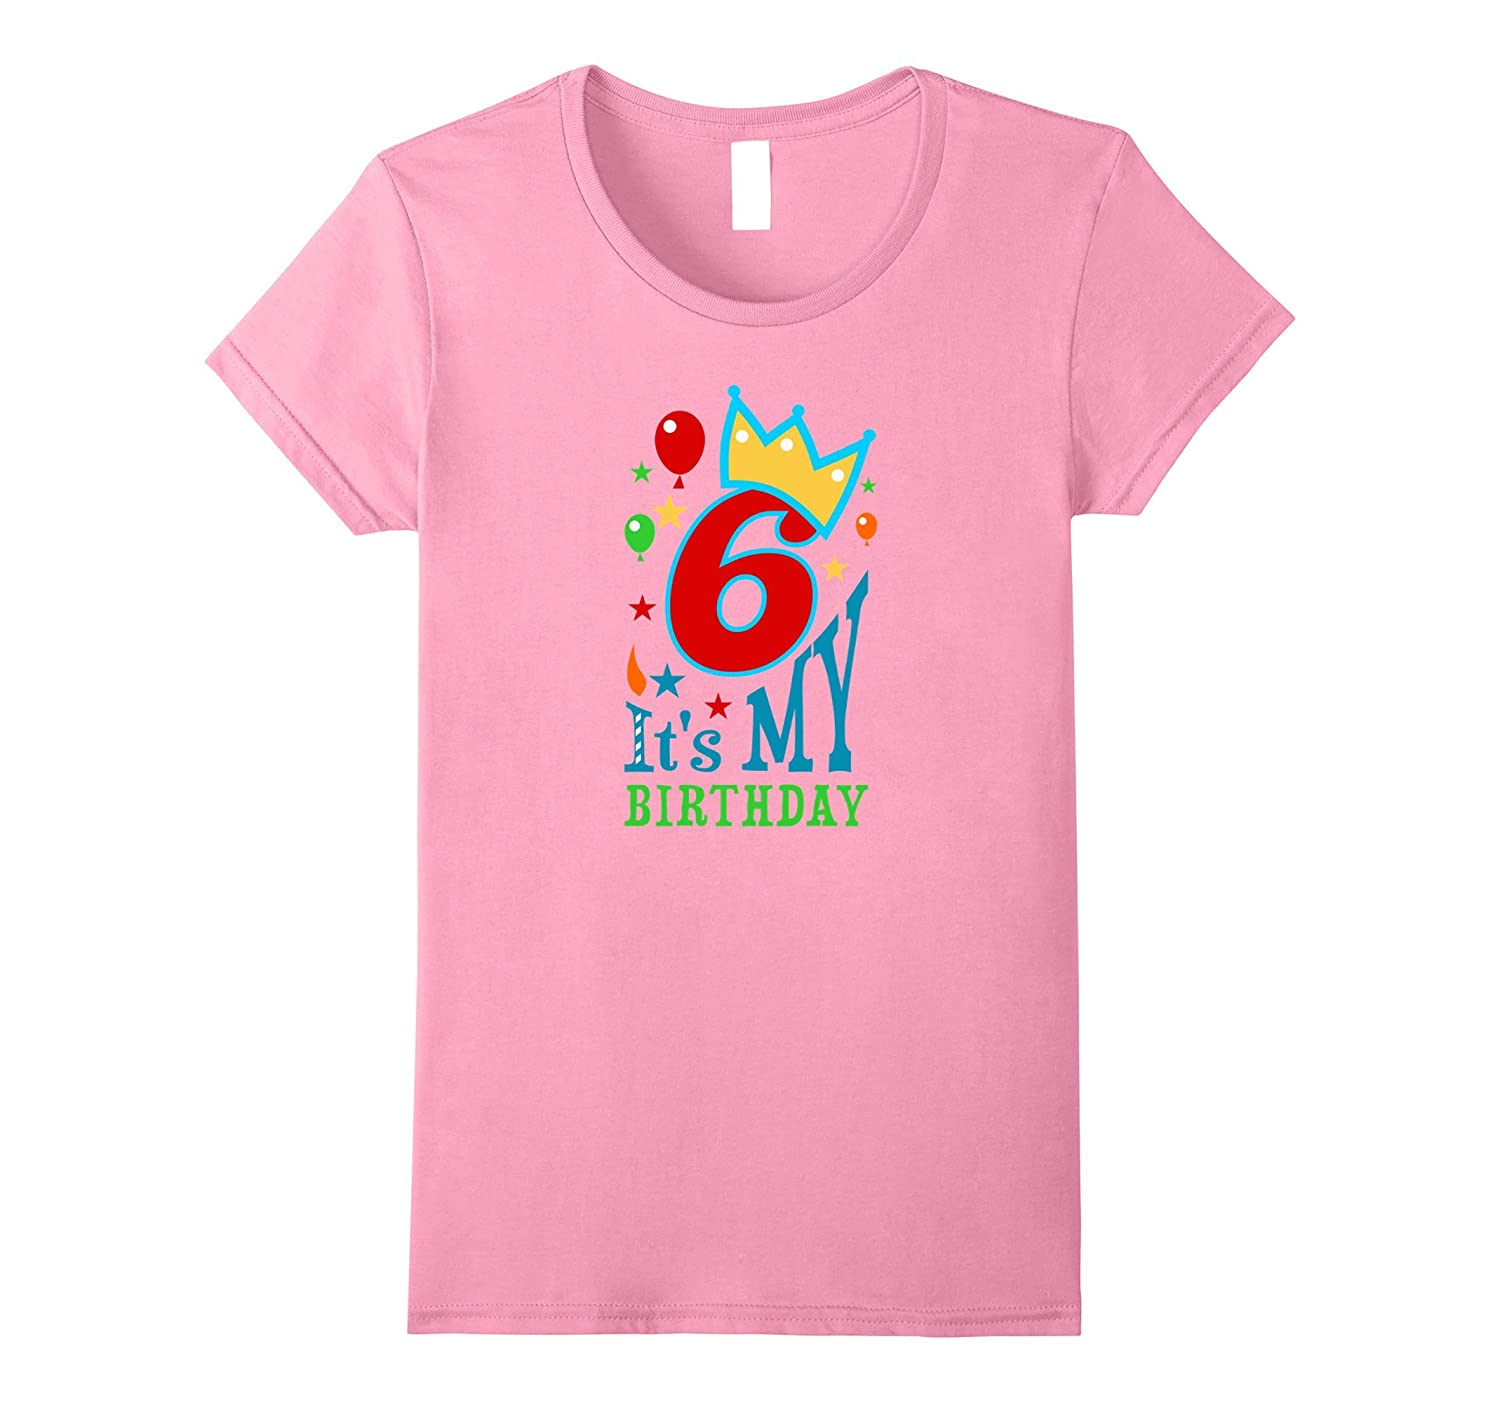 Birthday Shirt For Girls Boys Age 6